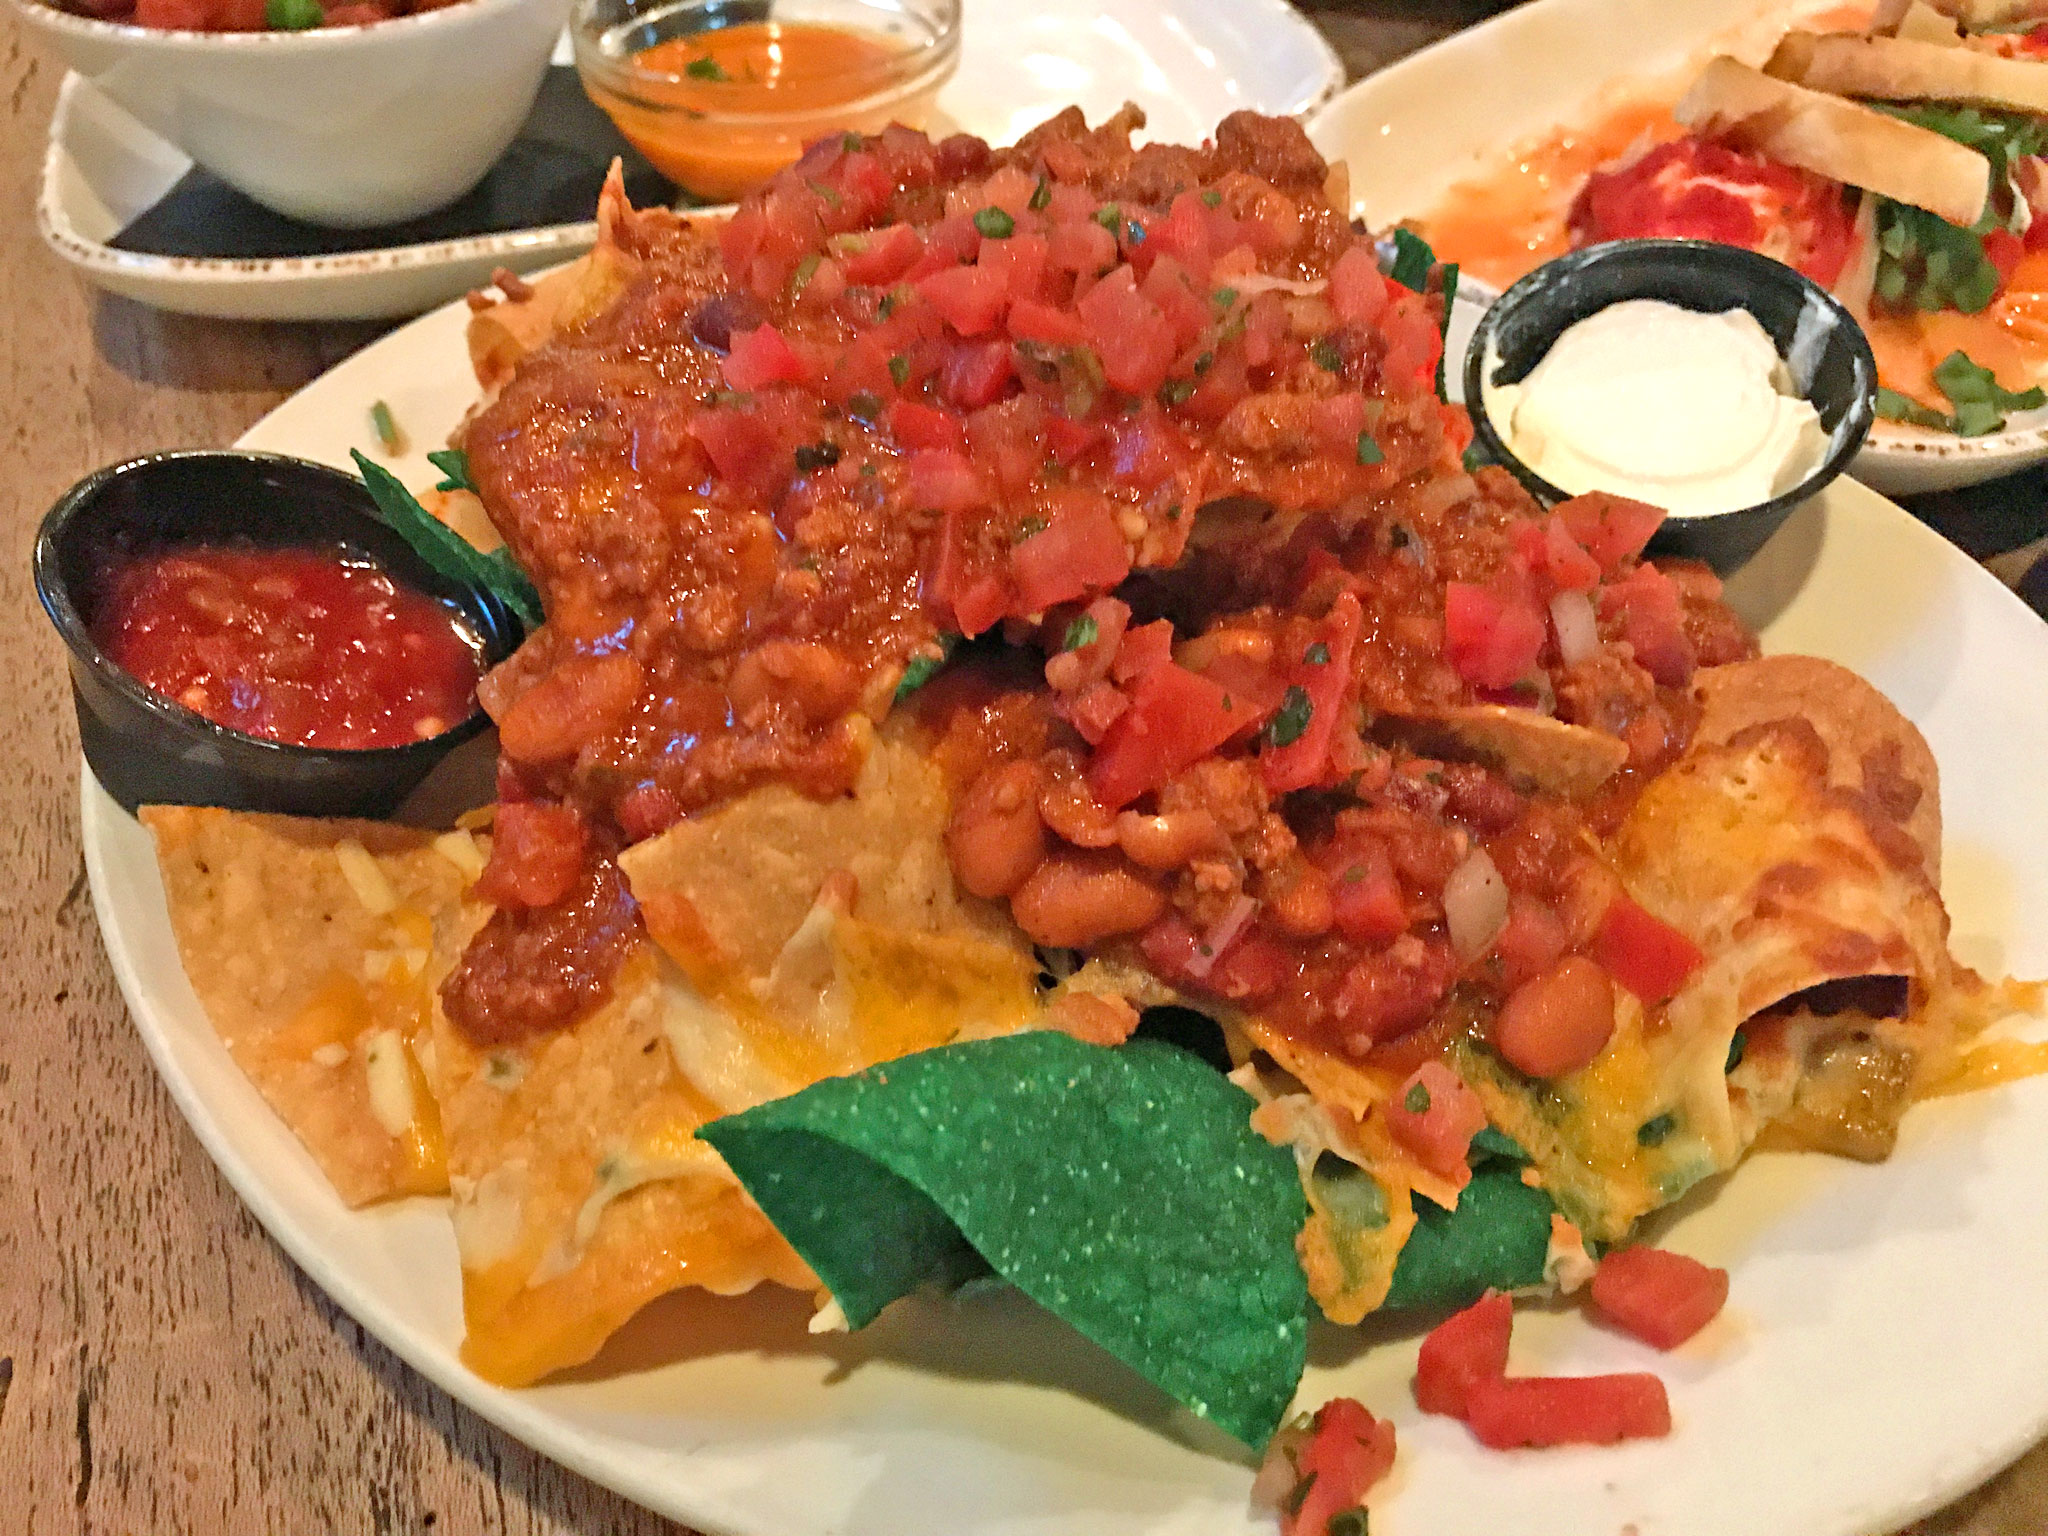 Nachos at The Tap Room